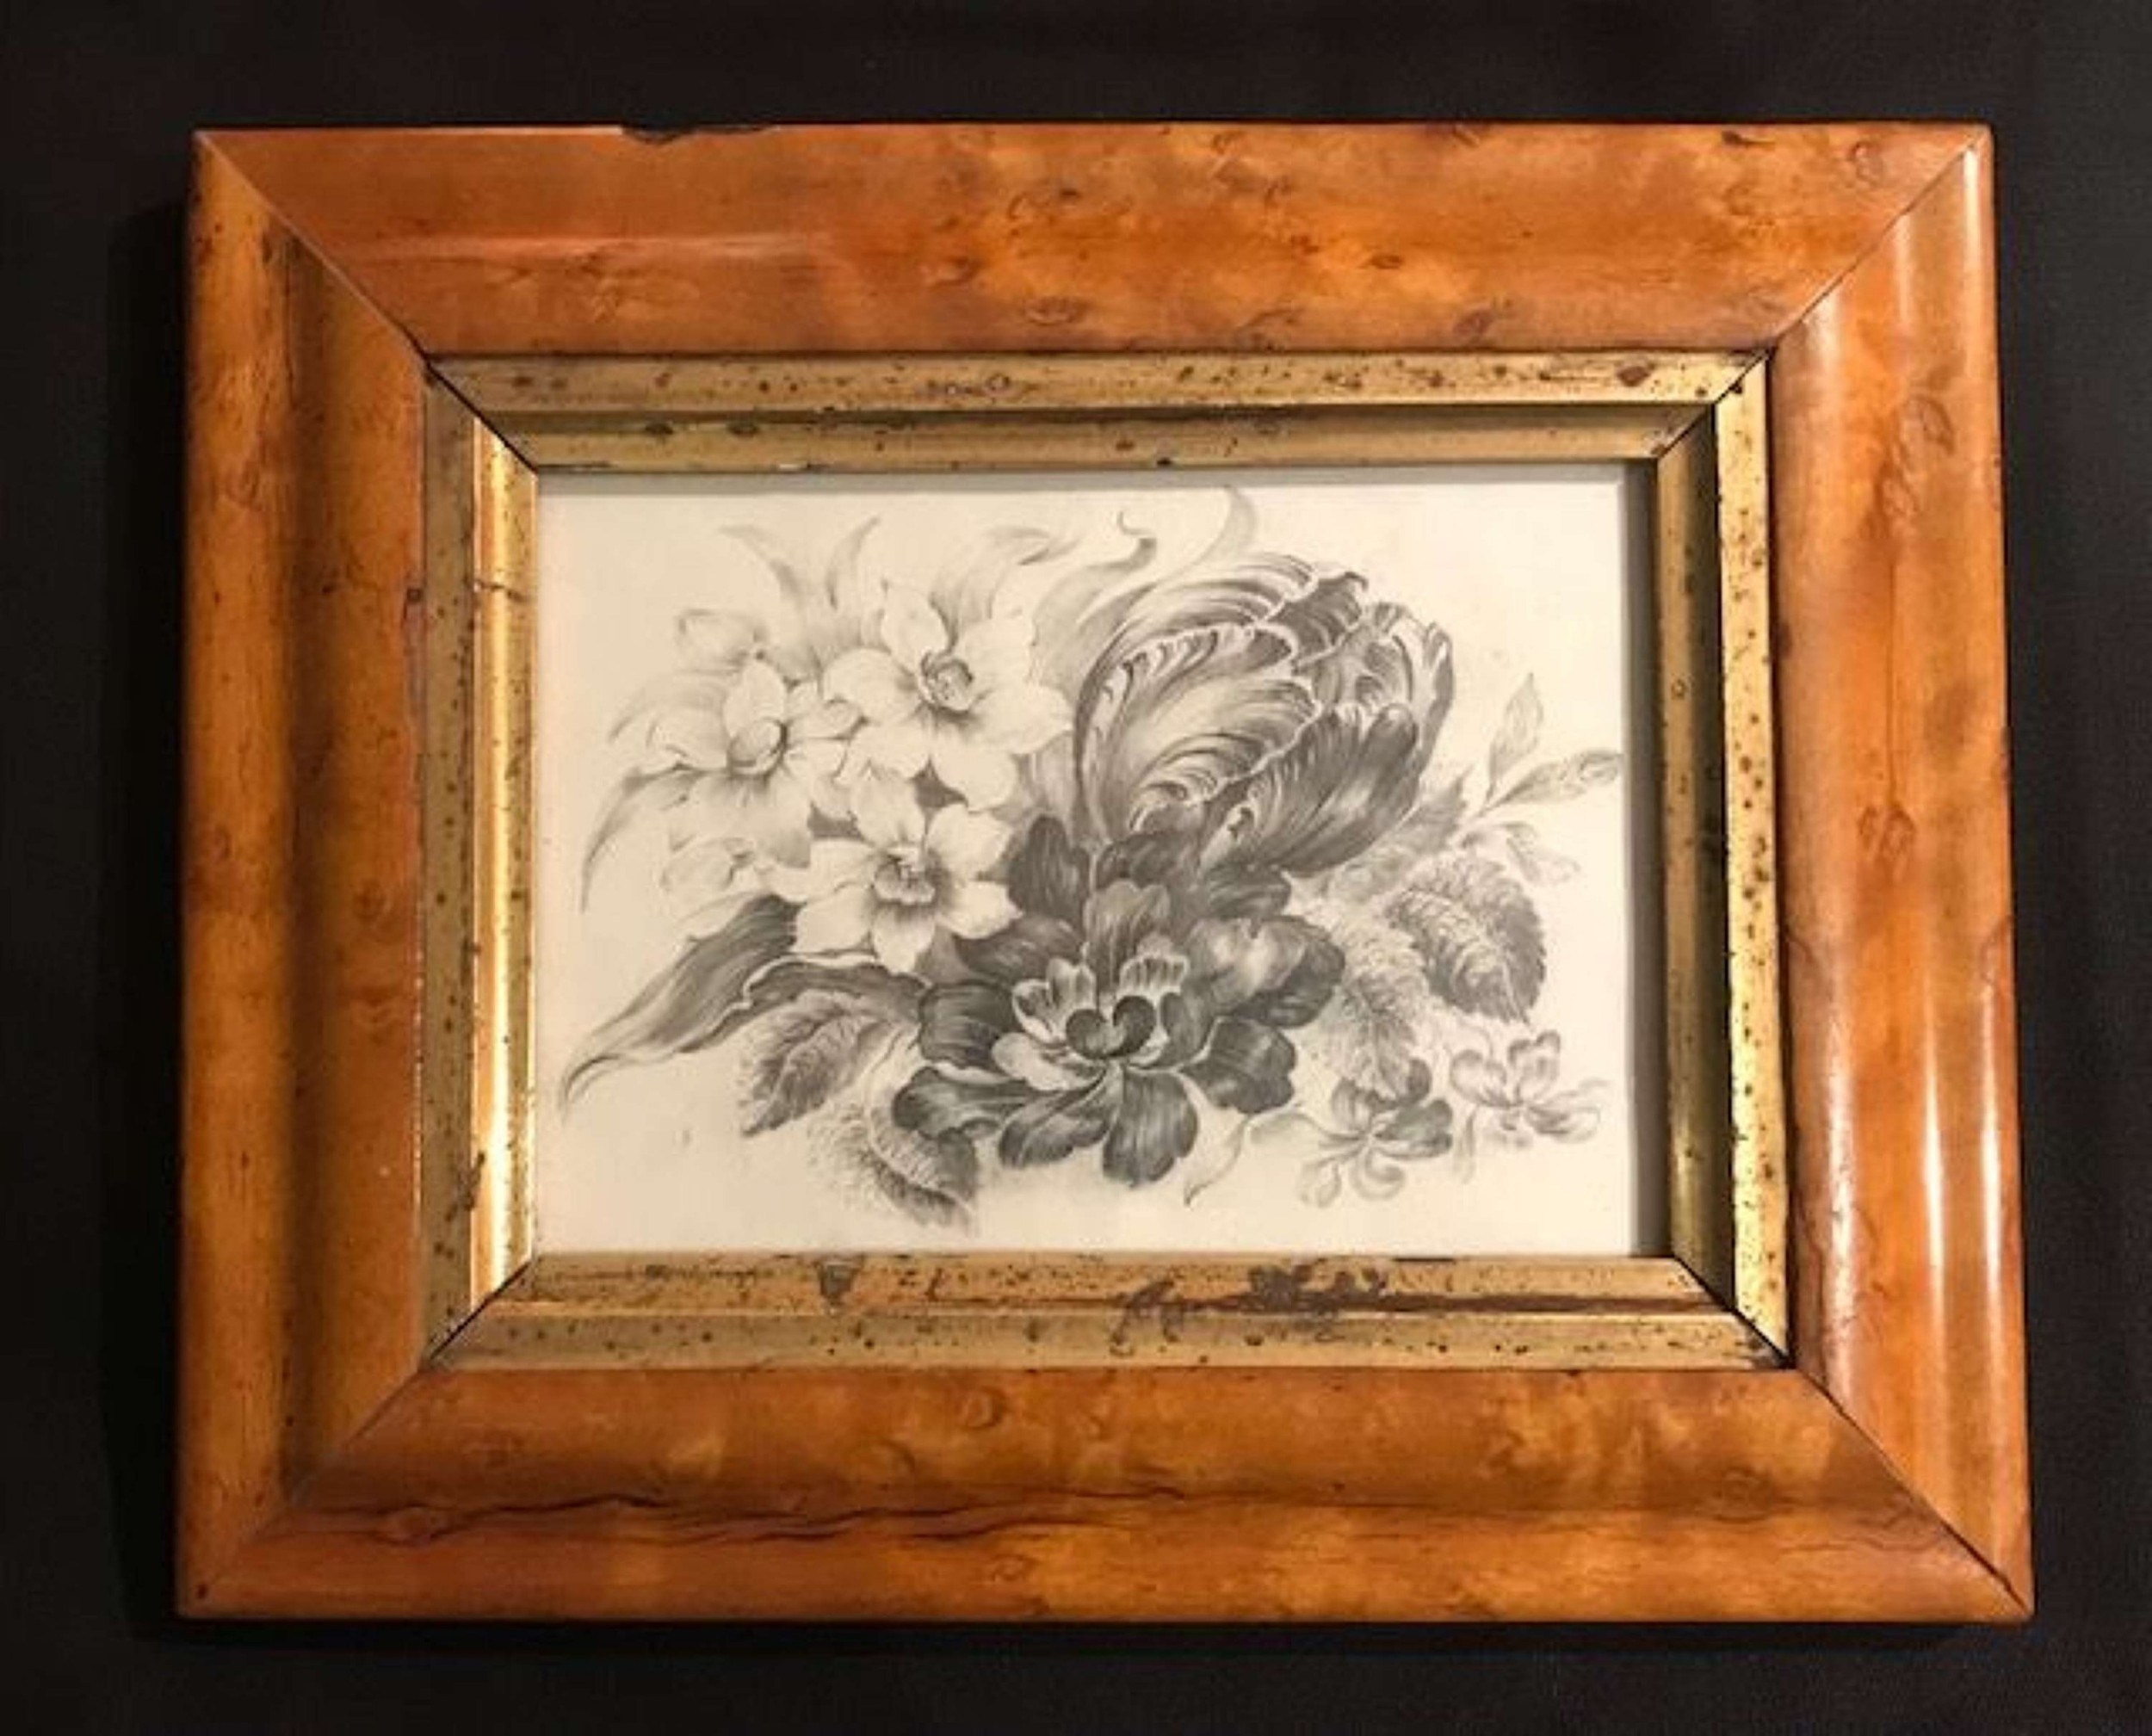 19th c monochrome floral pencil drawing